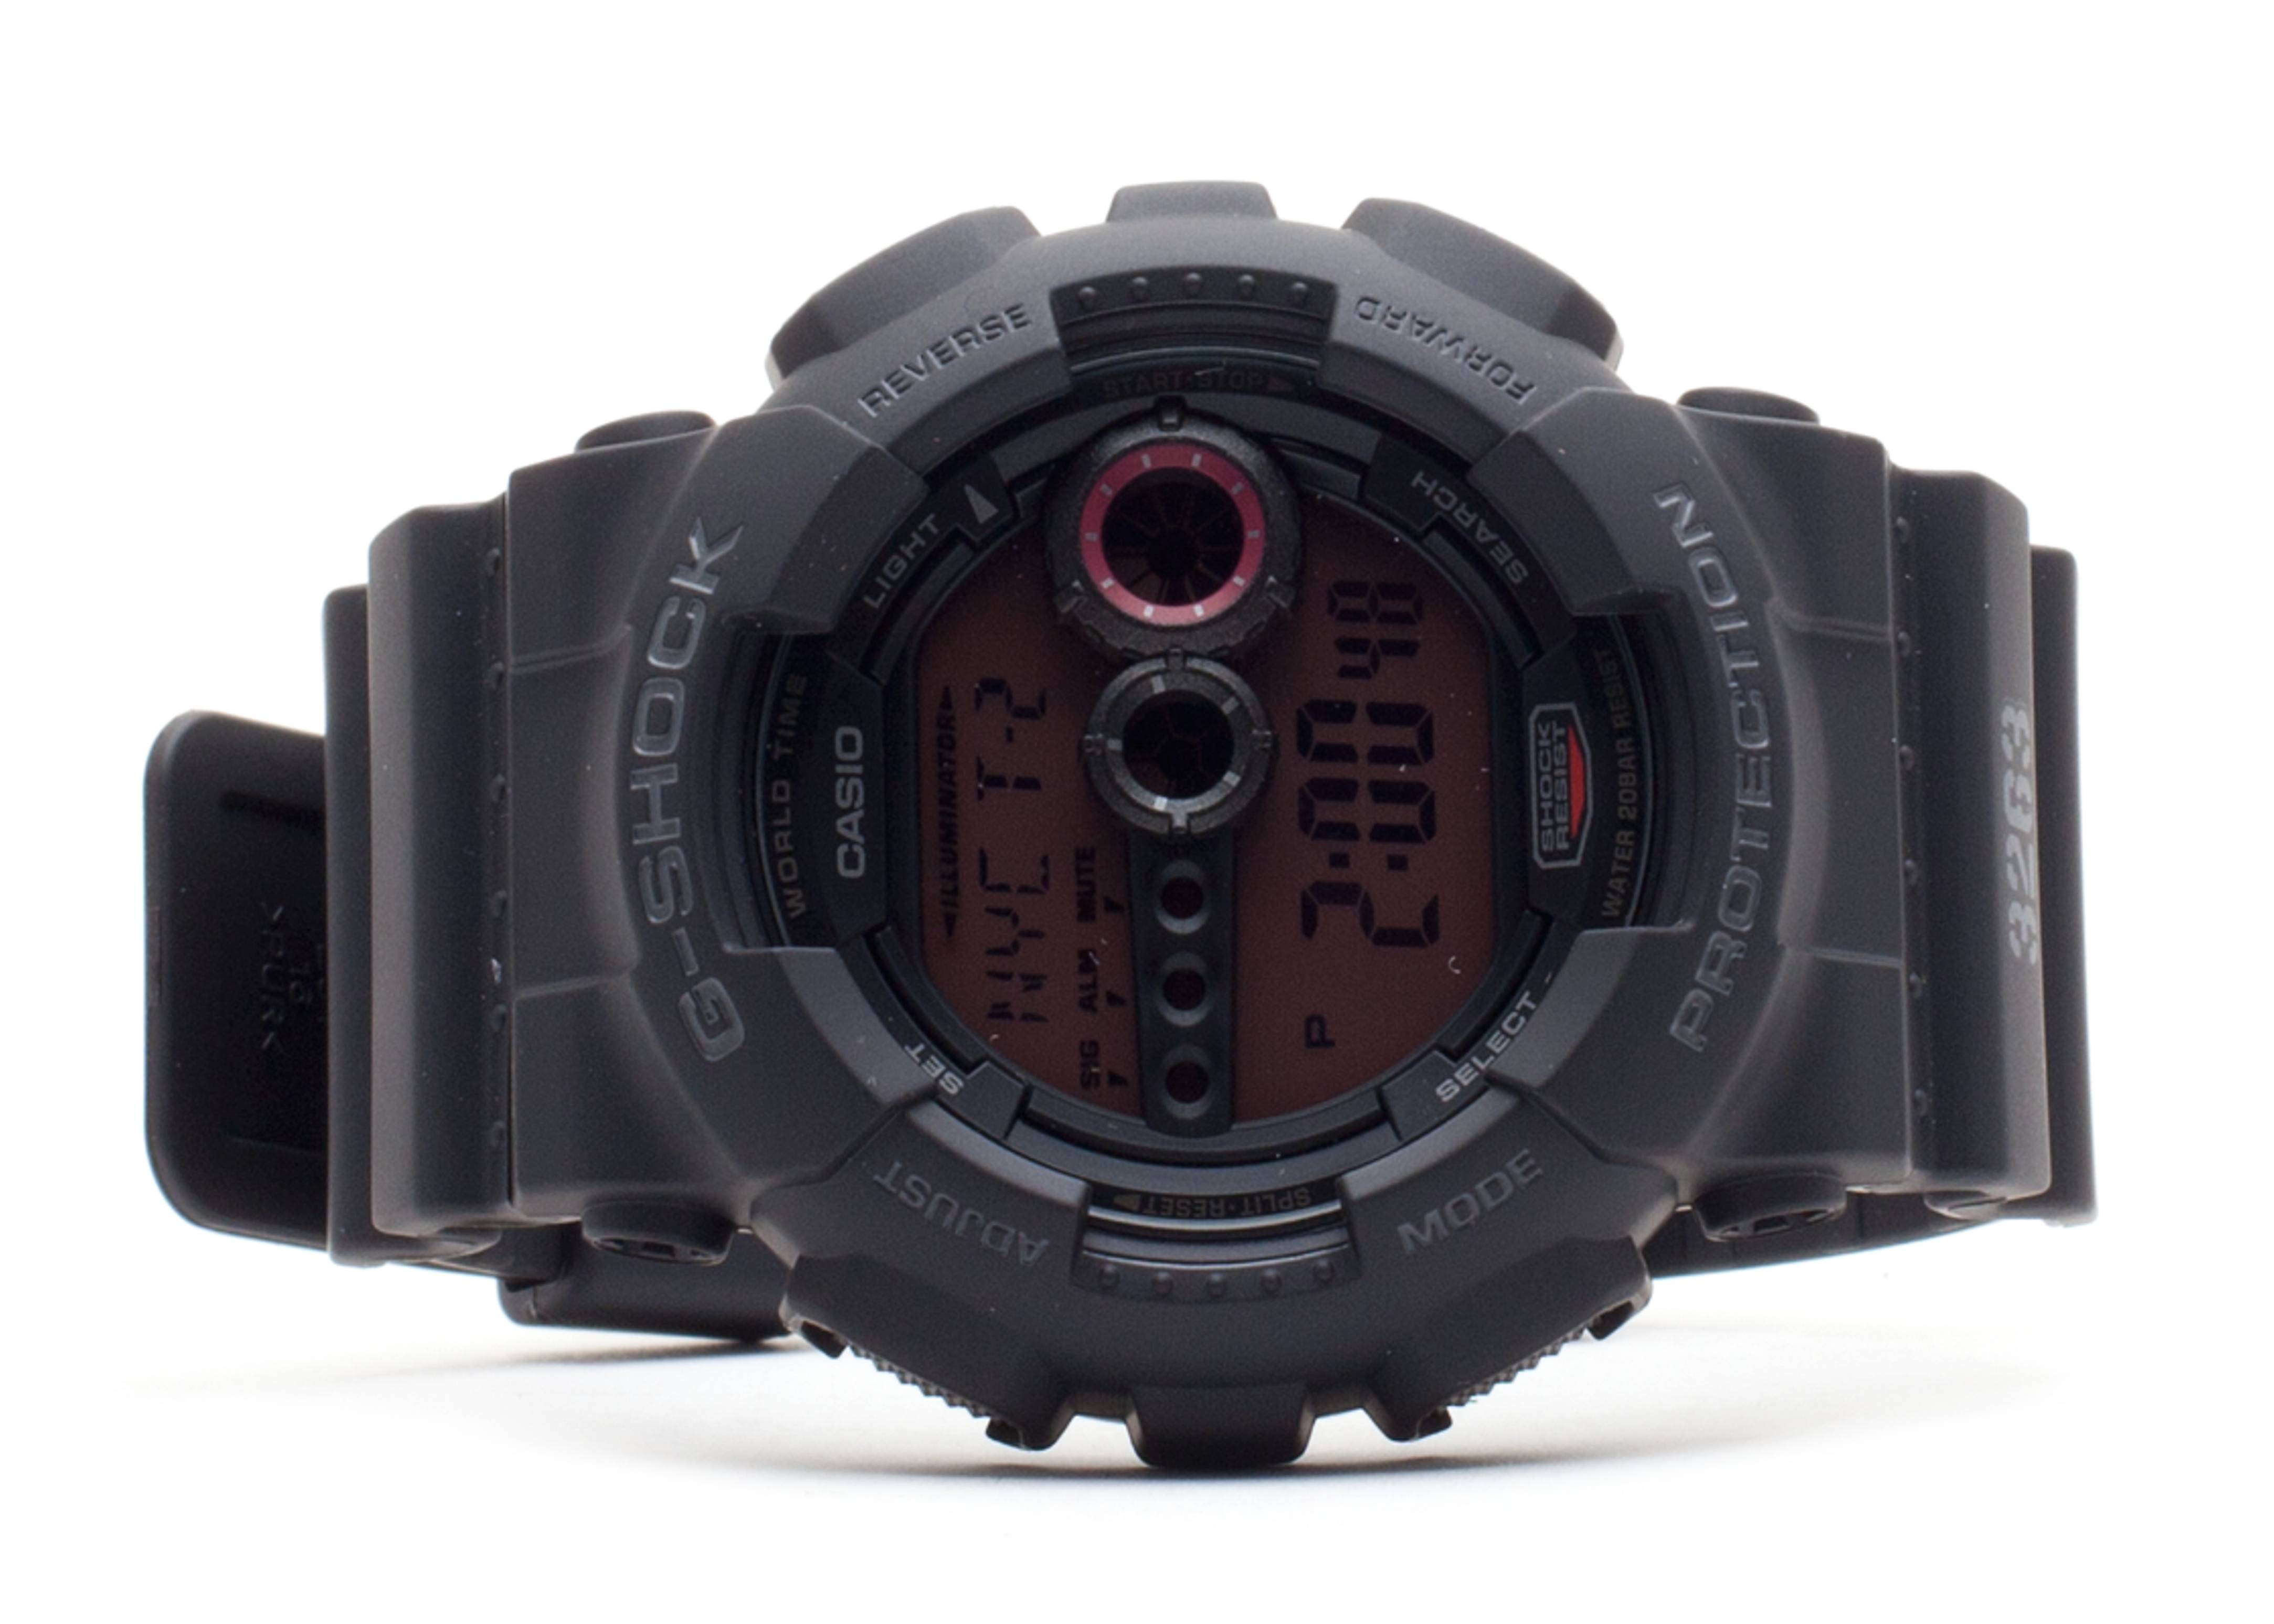 g-shock gd100ms1cr